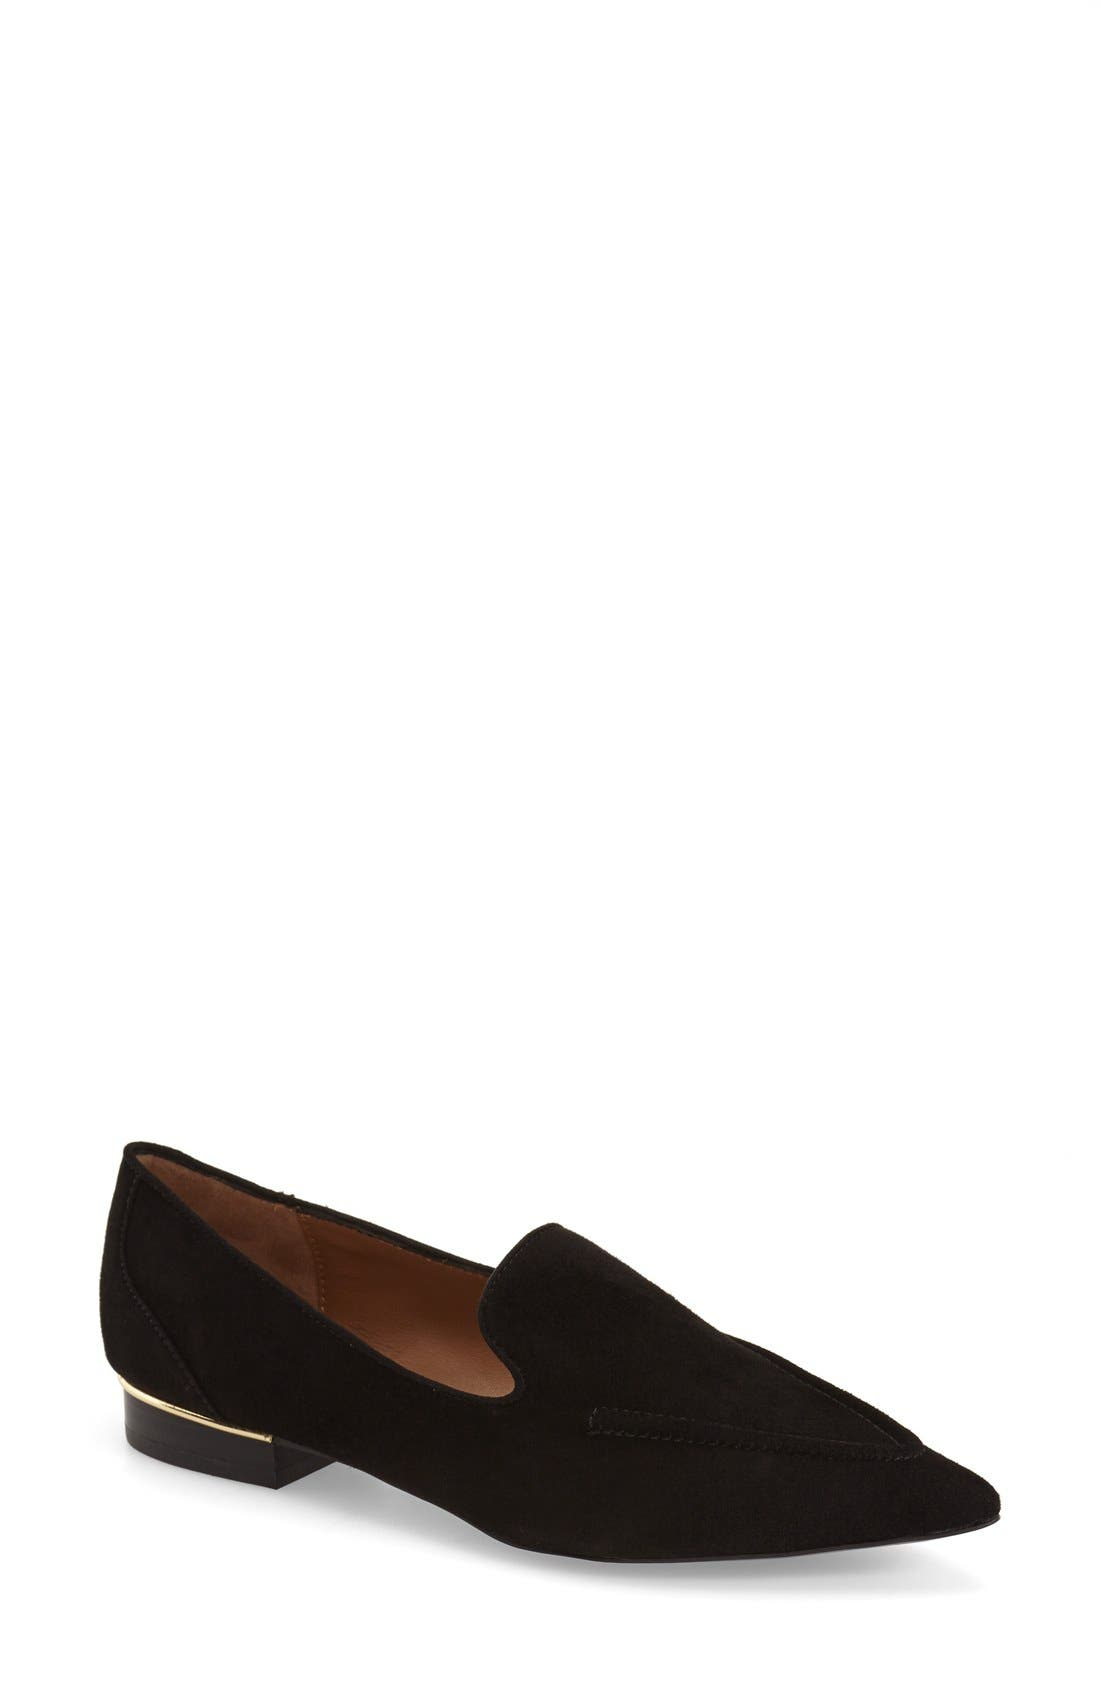 TOPSHOP, 'Kindred' Pointy Toe Loafer, Main thumbnail 1, color, 001